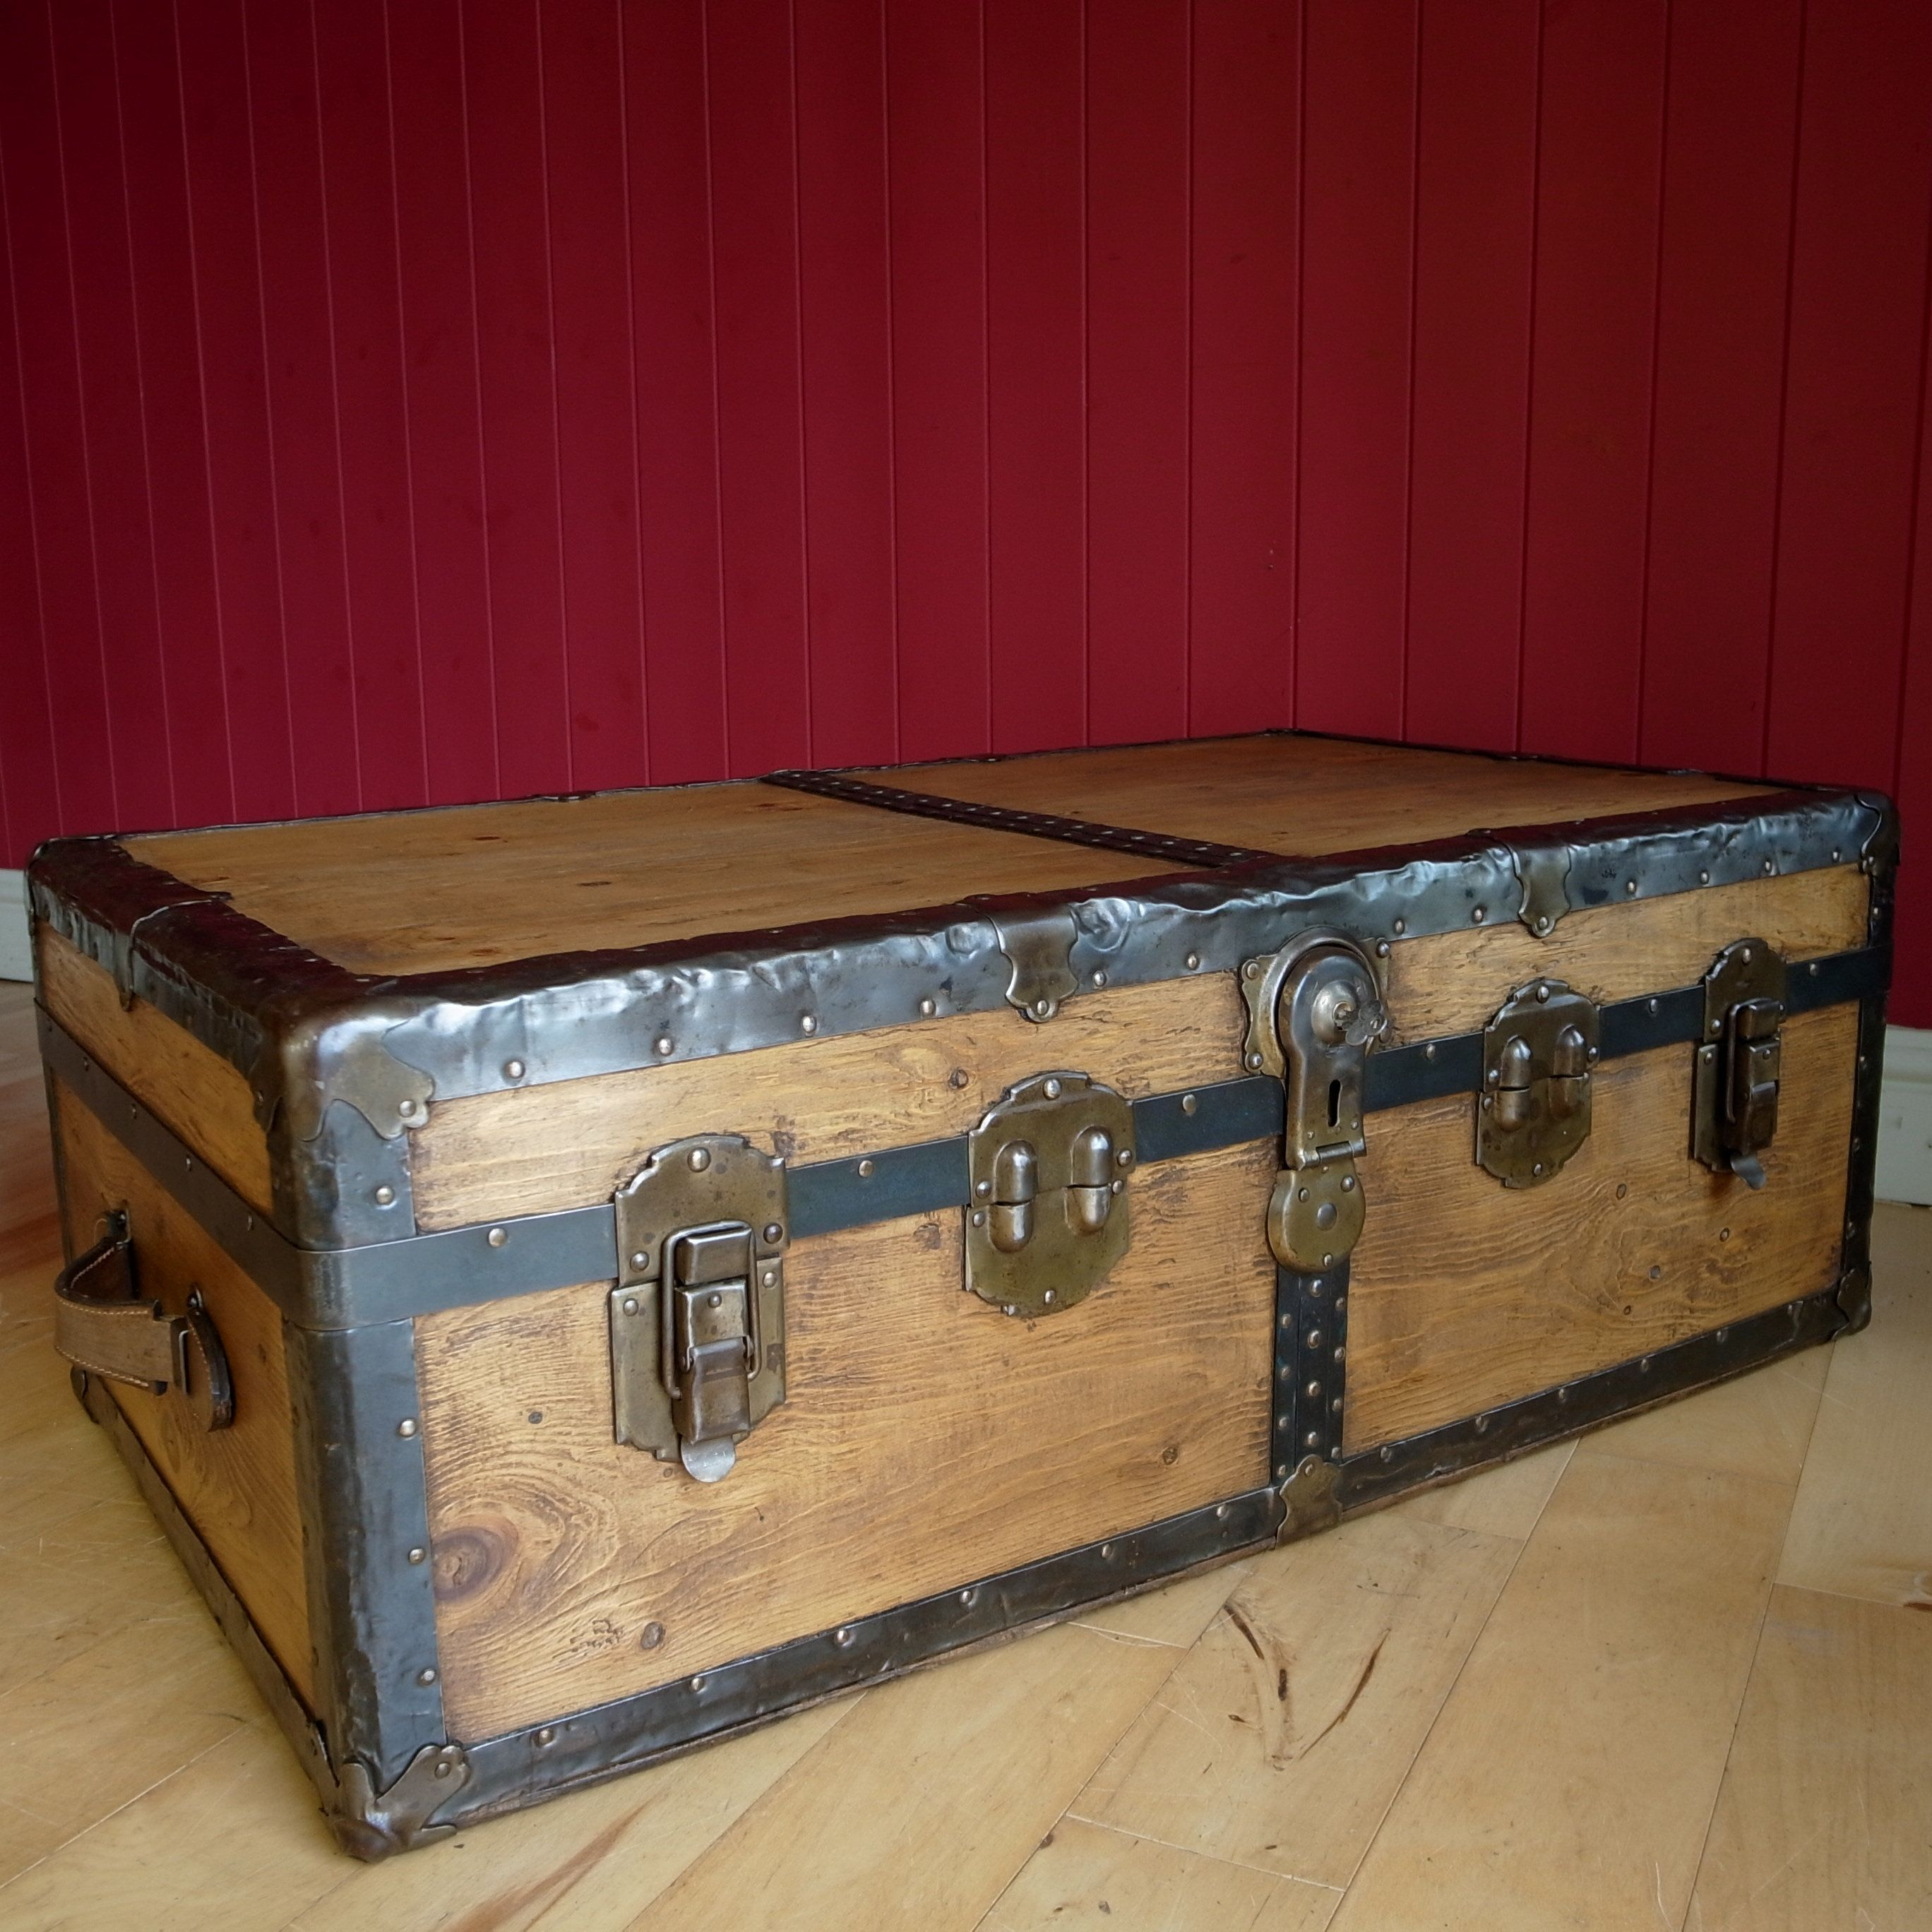 Steamer Trunk Coffee Table With Drawers Collection New Stock This Week At 9 E Coffee Table Trunk Steamer Trunk Coffee Table Coffee Table With Drawers